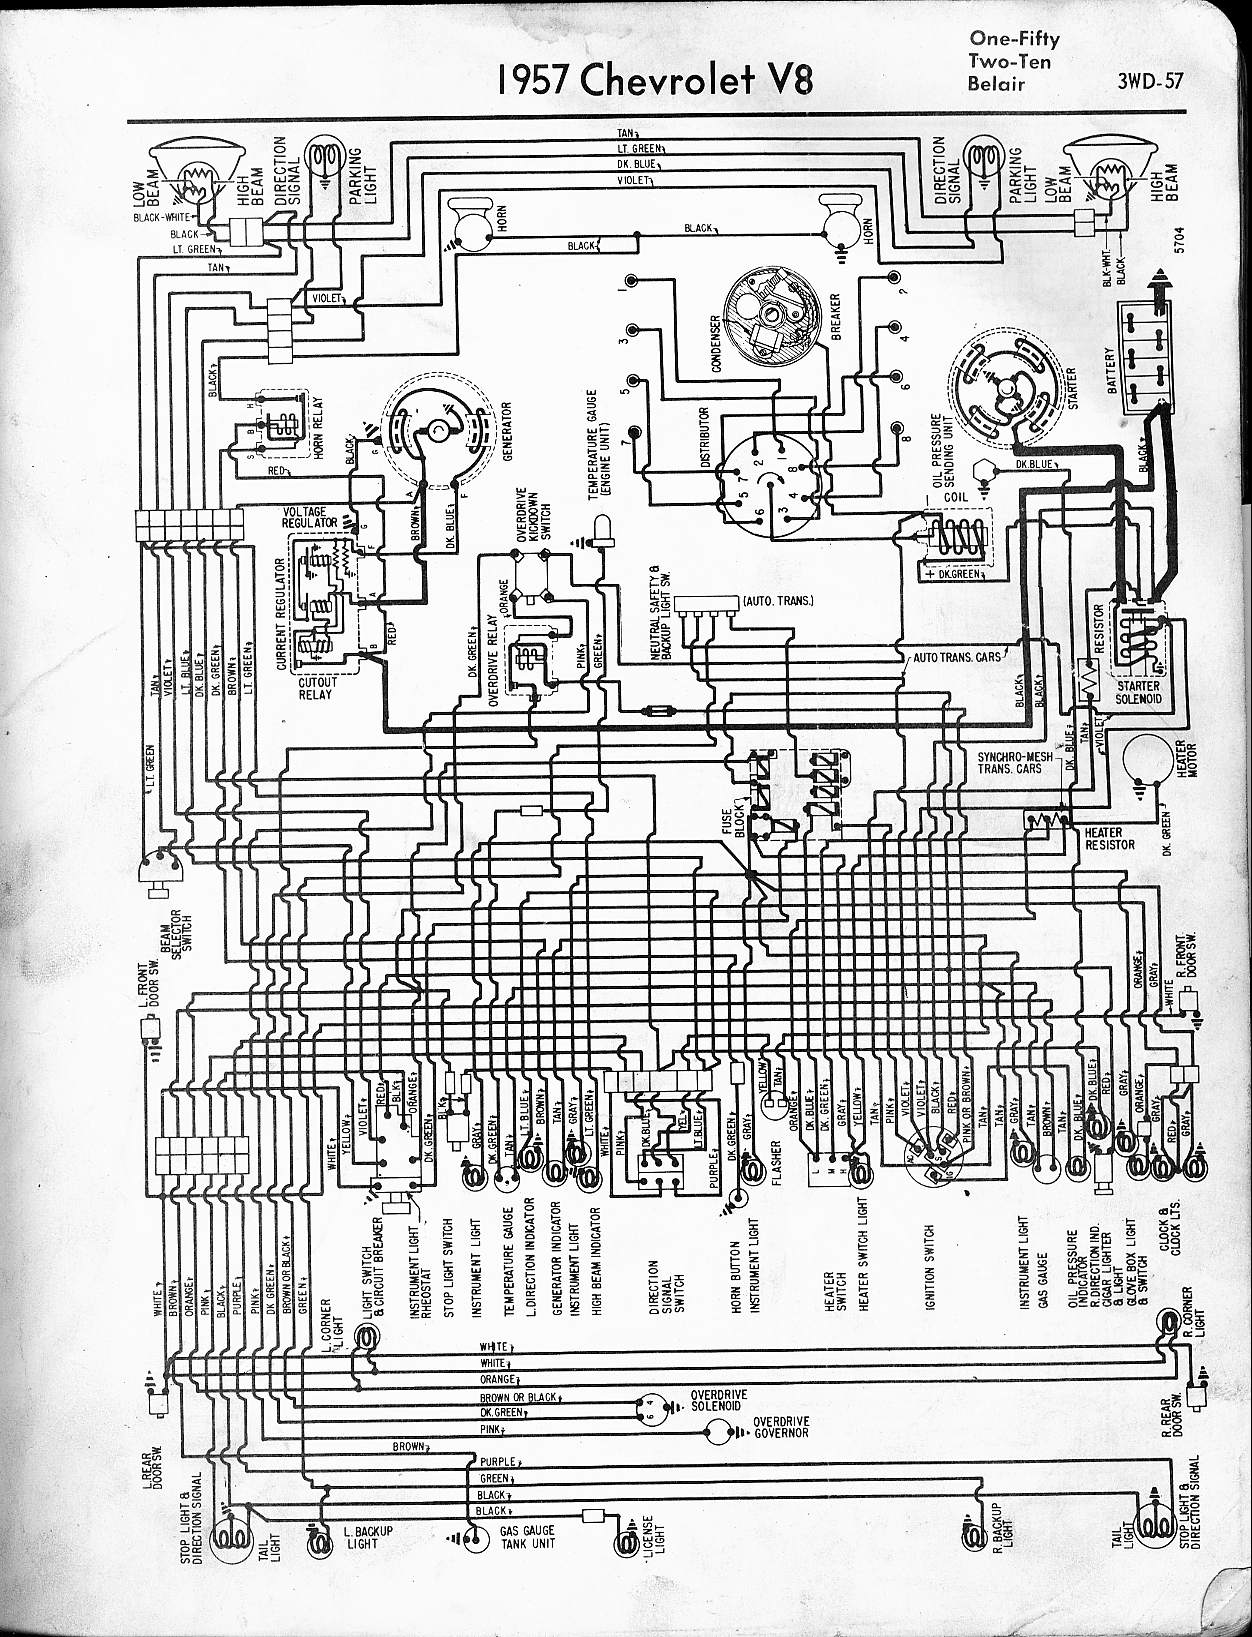 1957 chevy wiring diagram wiring diagram 1956 56 chevy truck full color